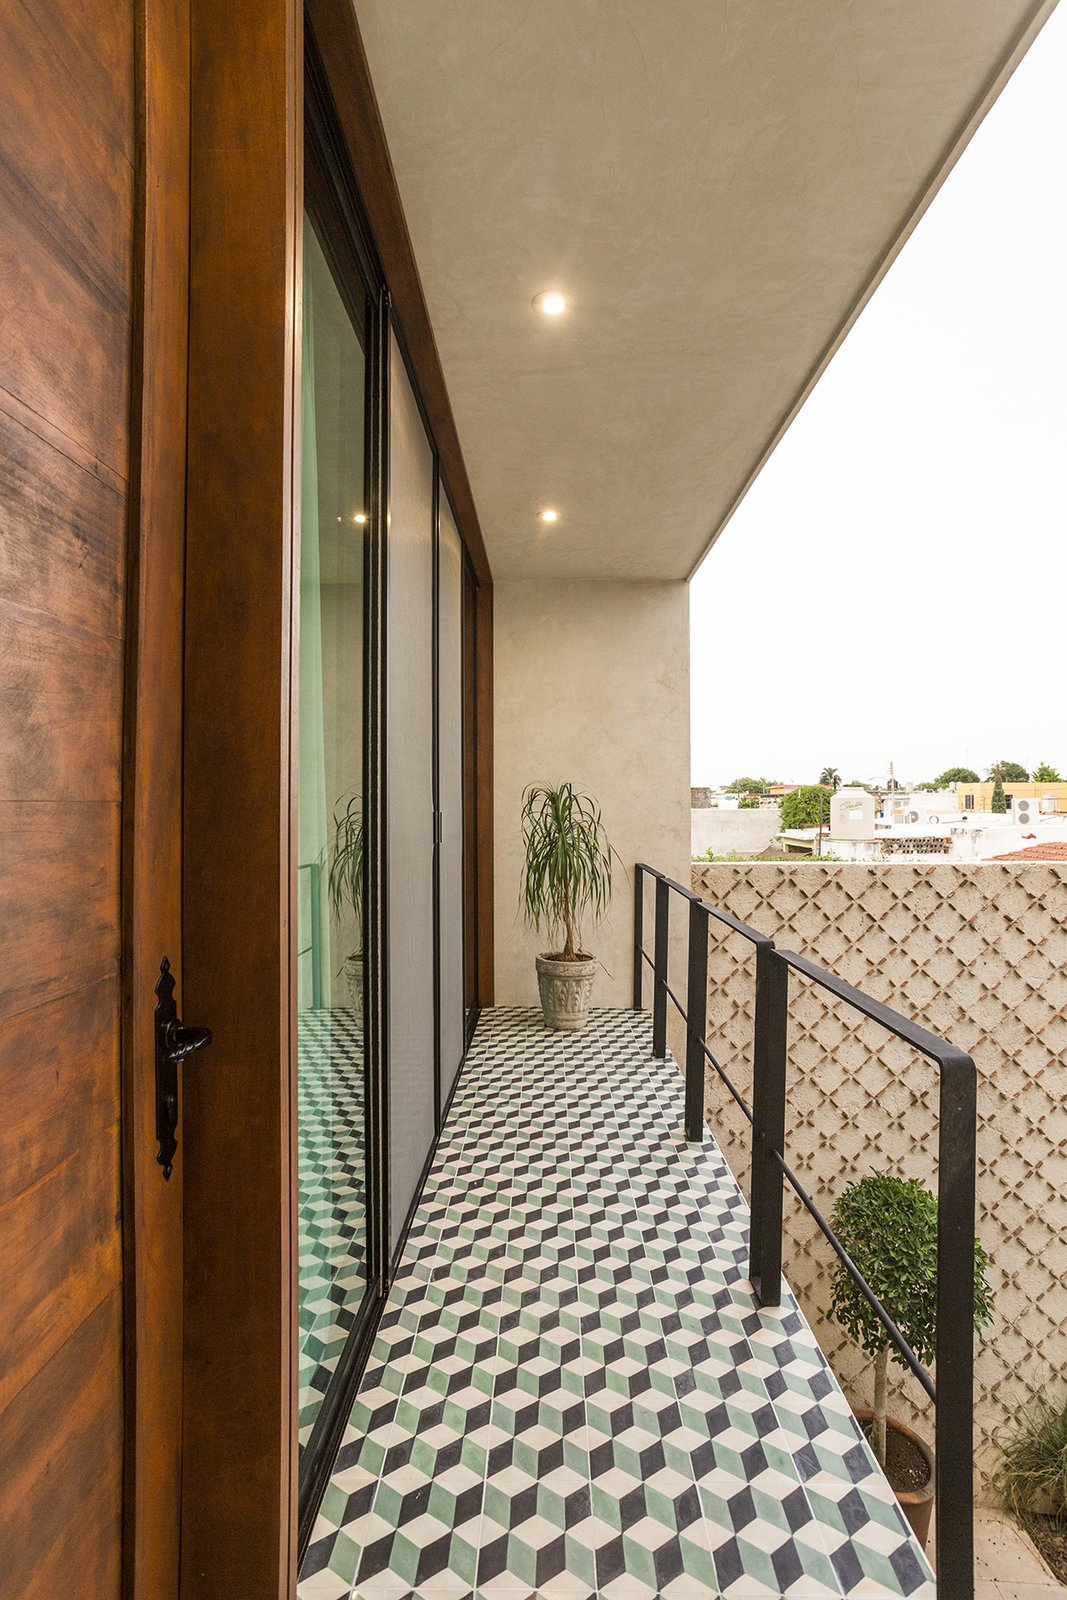 Tagged: Outdoor, Tile Patio, Porch, Deck, and Metal Fences, Wall.  Lemon Tree House by Taller Estilo Arquitectura S de R.L de C.V